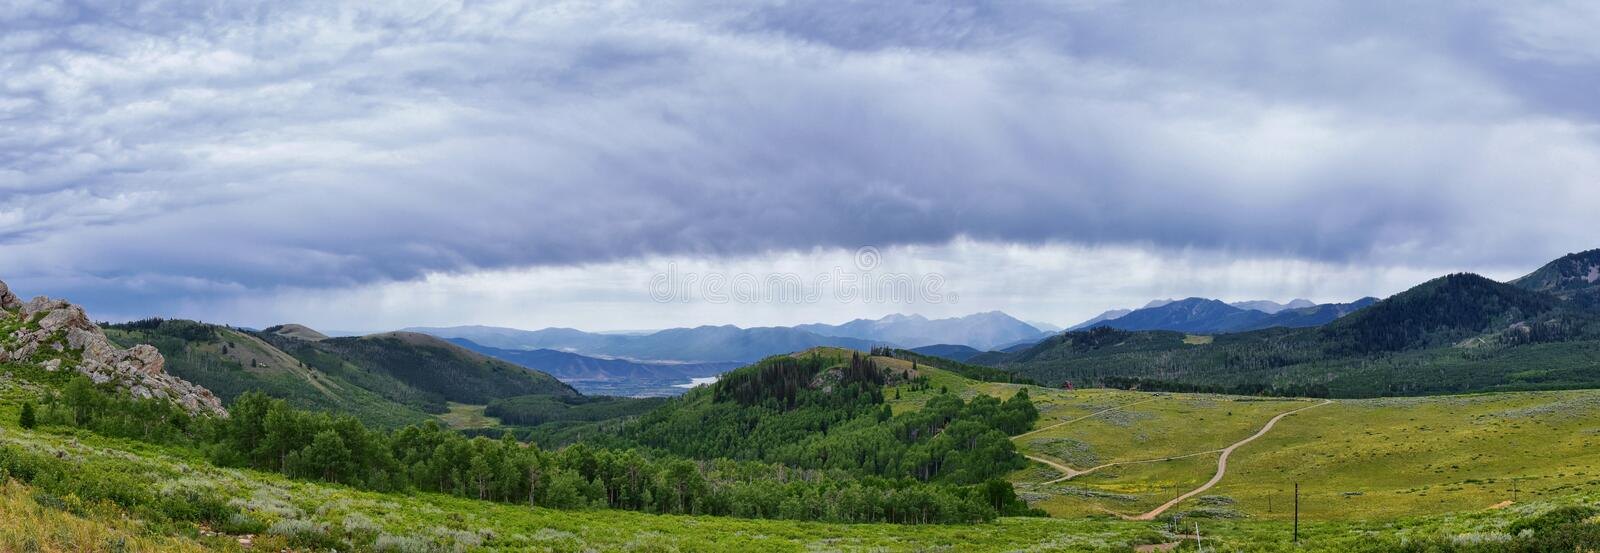 Guardsman Pass views of Panoramic Landscape of the Pass, Midway and Heber Valley along the Wasatch Front Rocky Mountains, Summer F. Orests, Clouds and Rainstorm stock photo